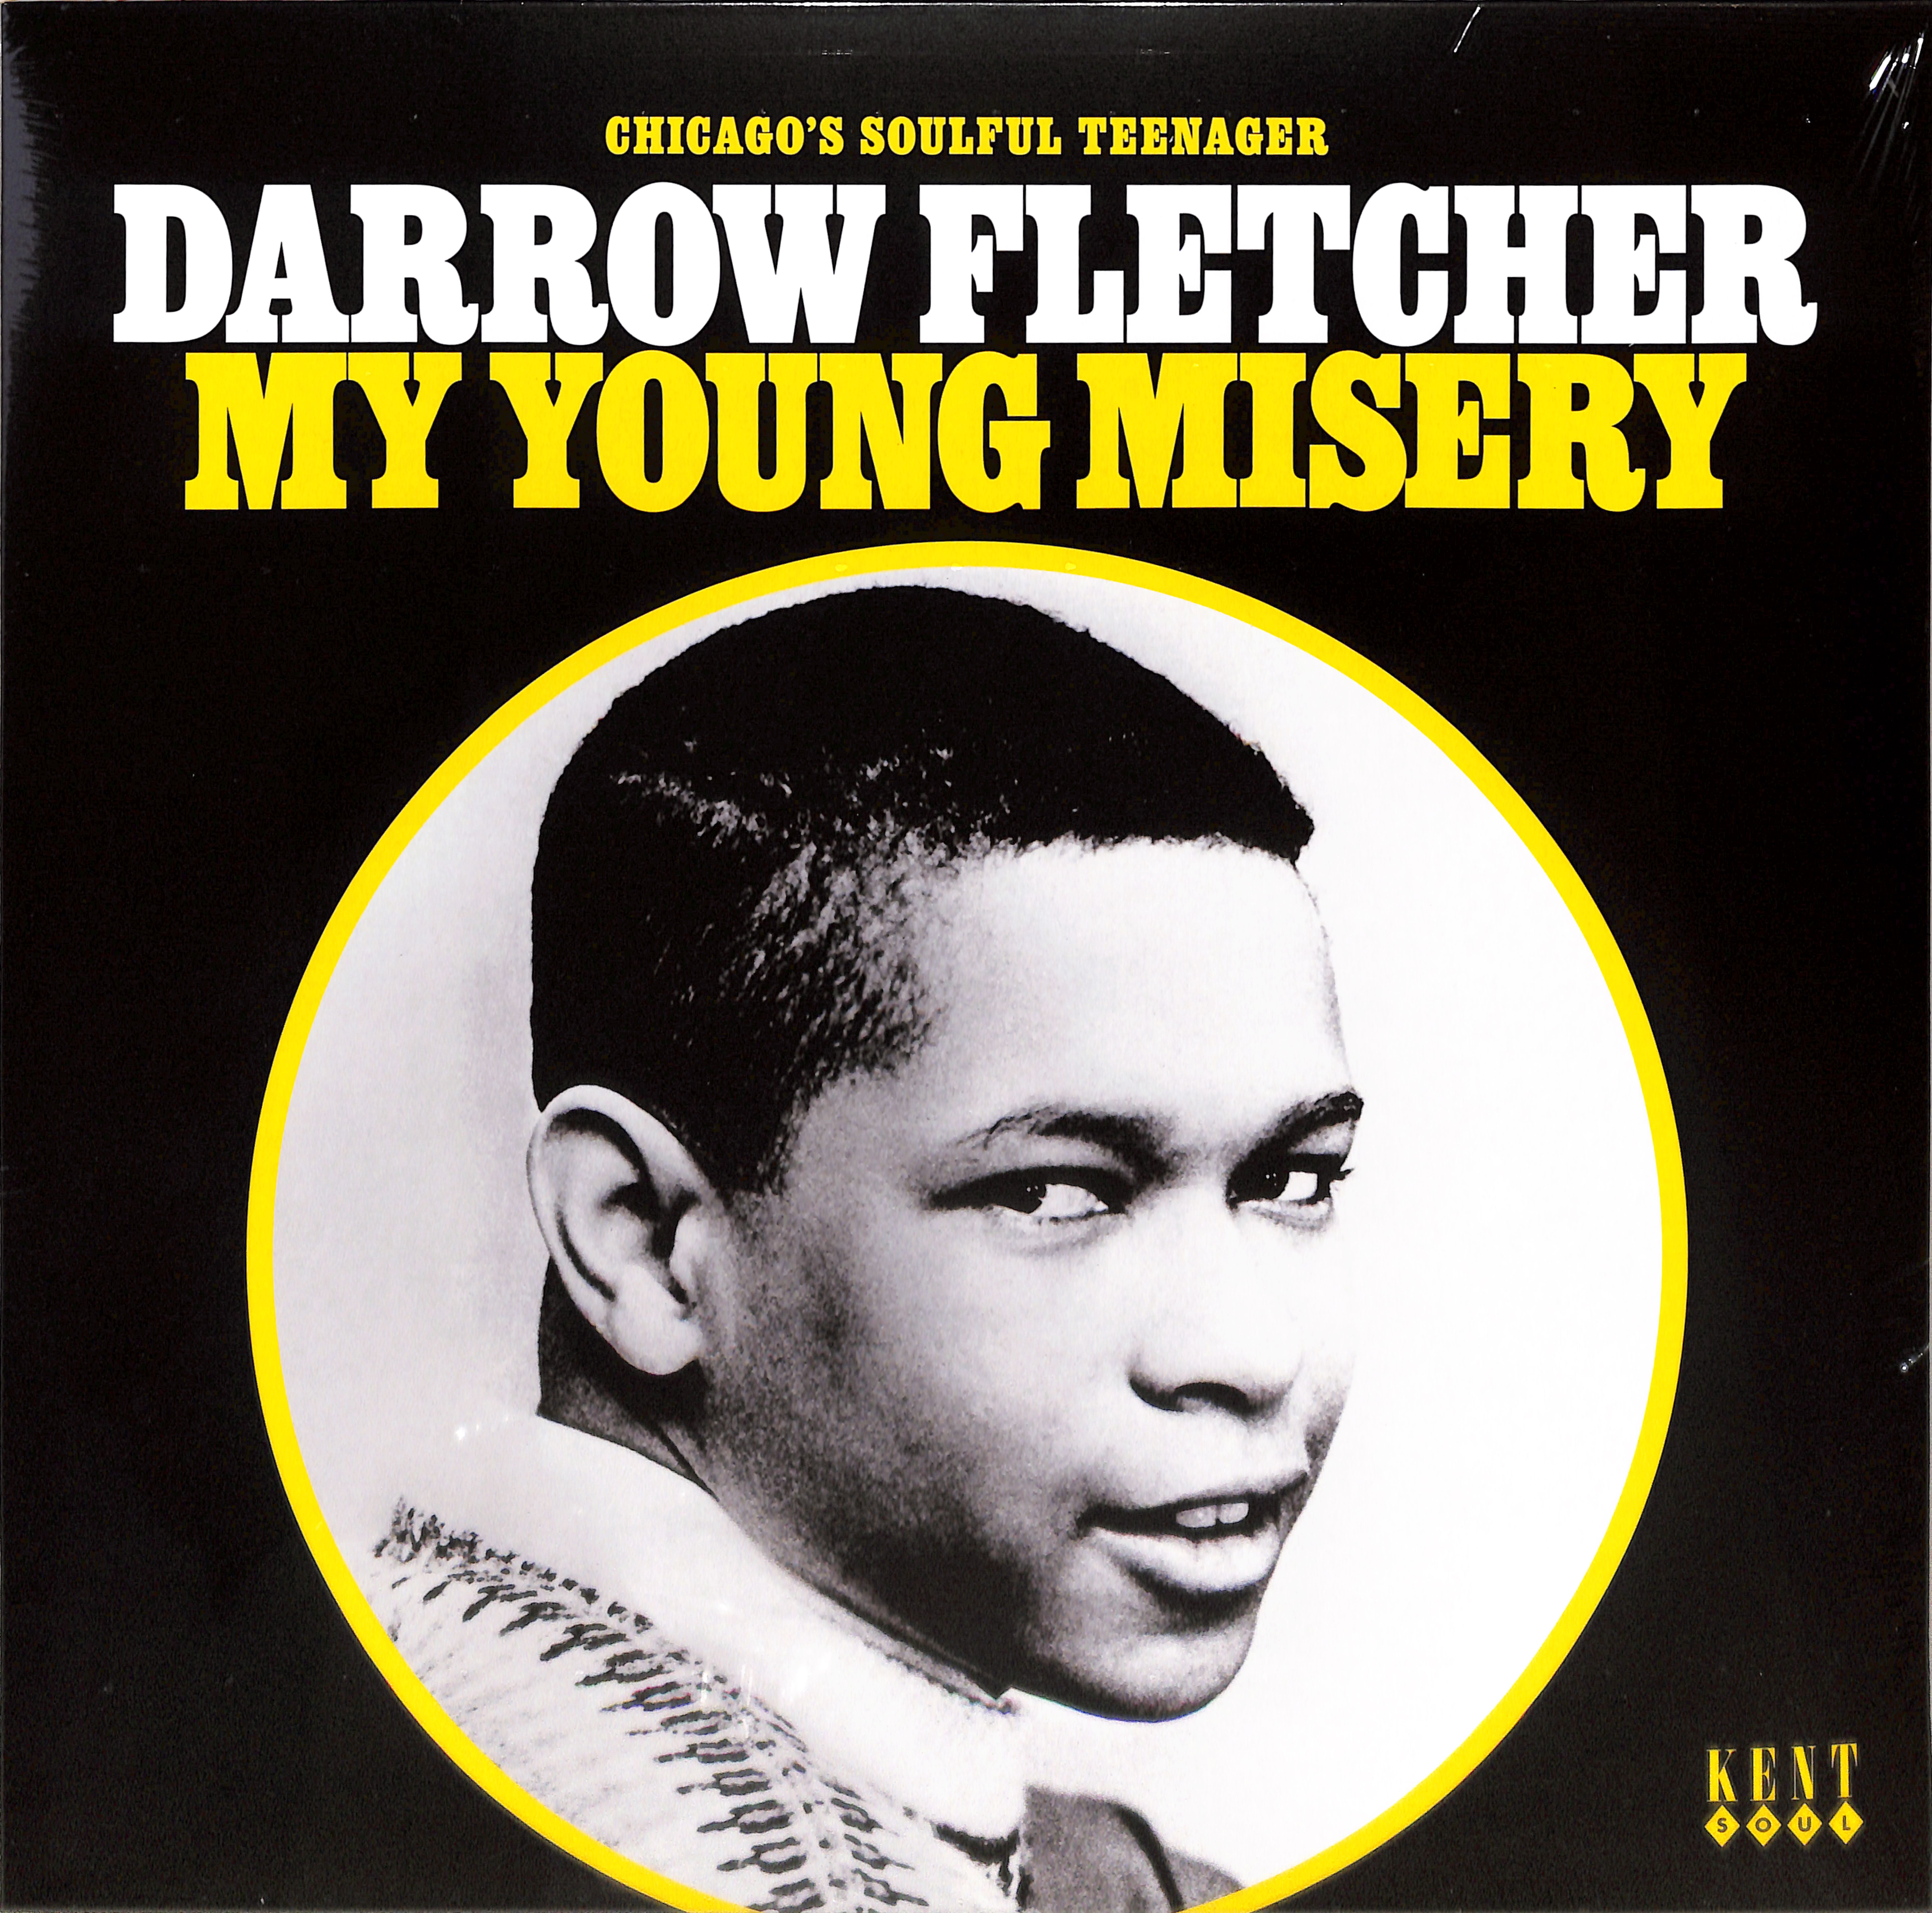 Darrow Fletcher - MY YOUNG MISERY